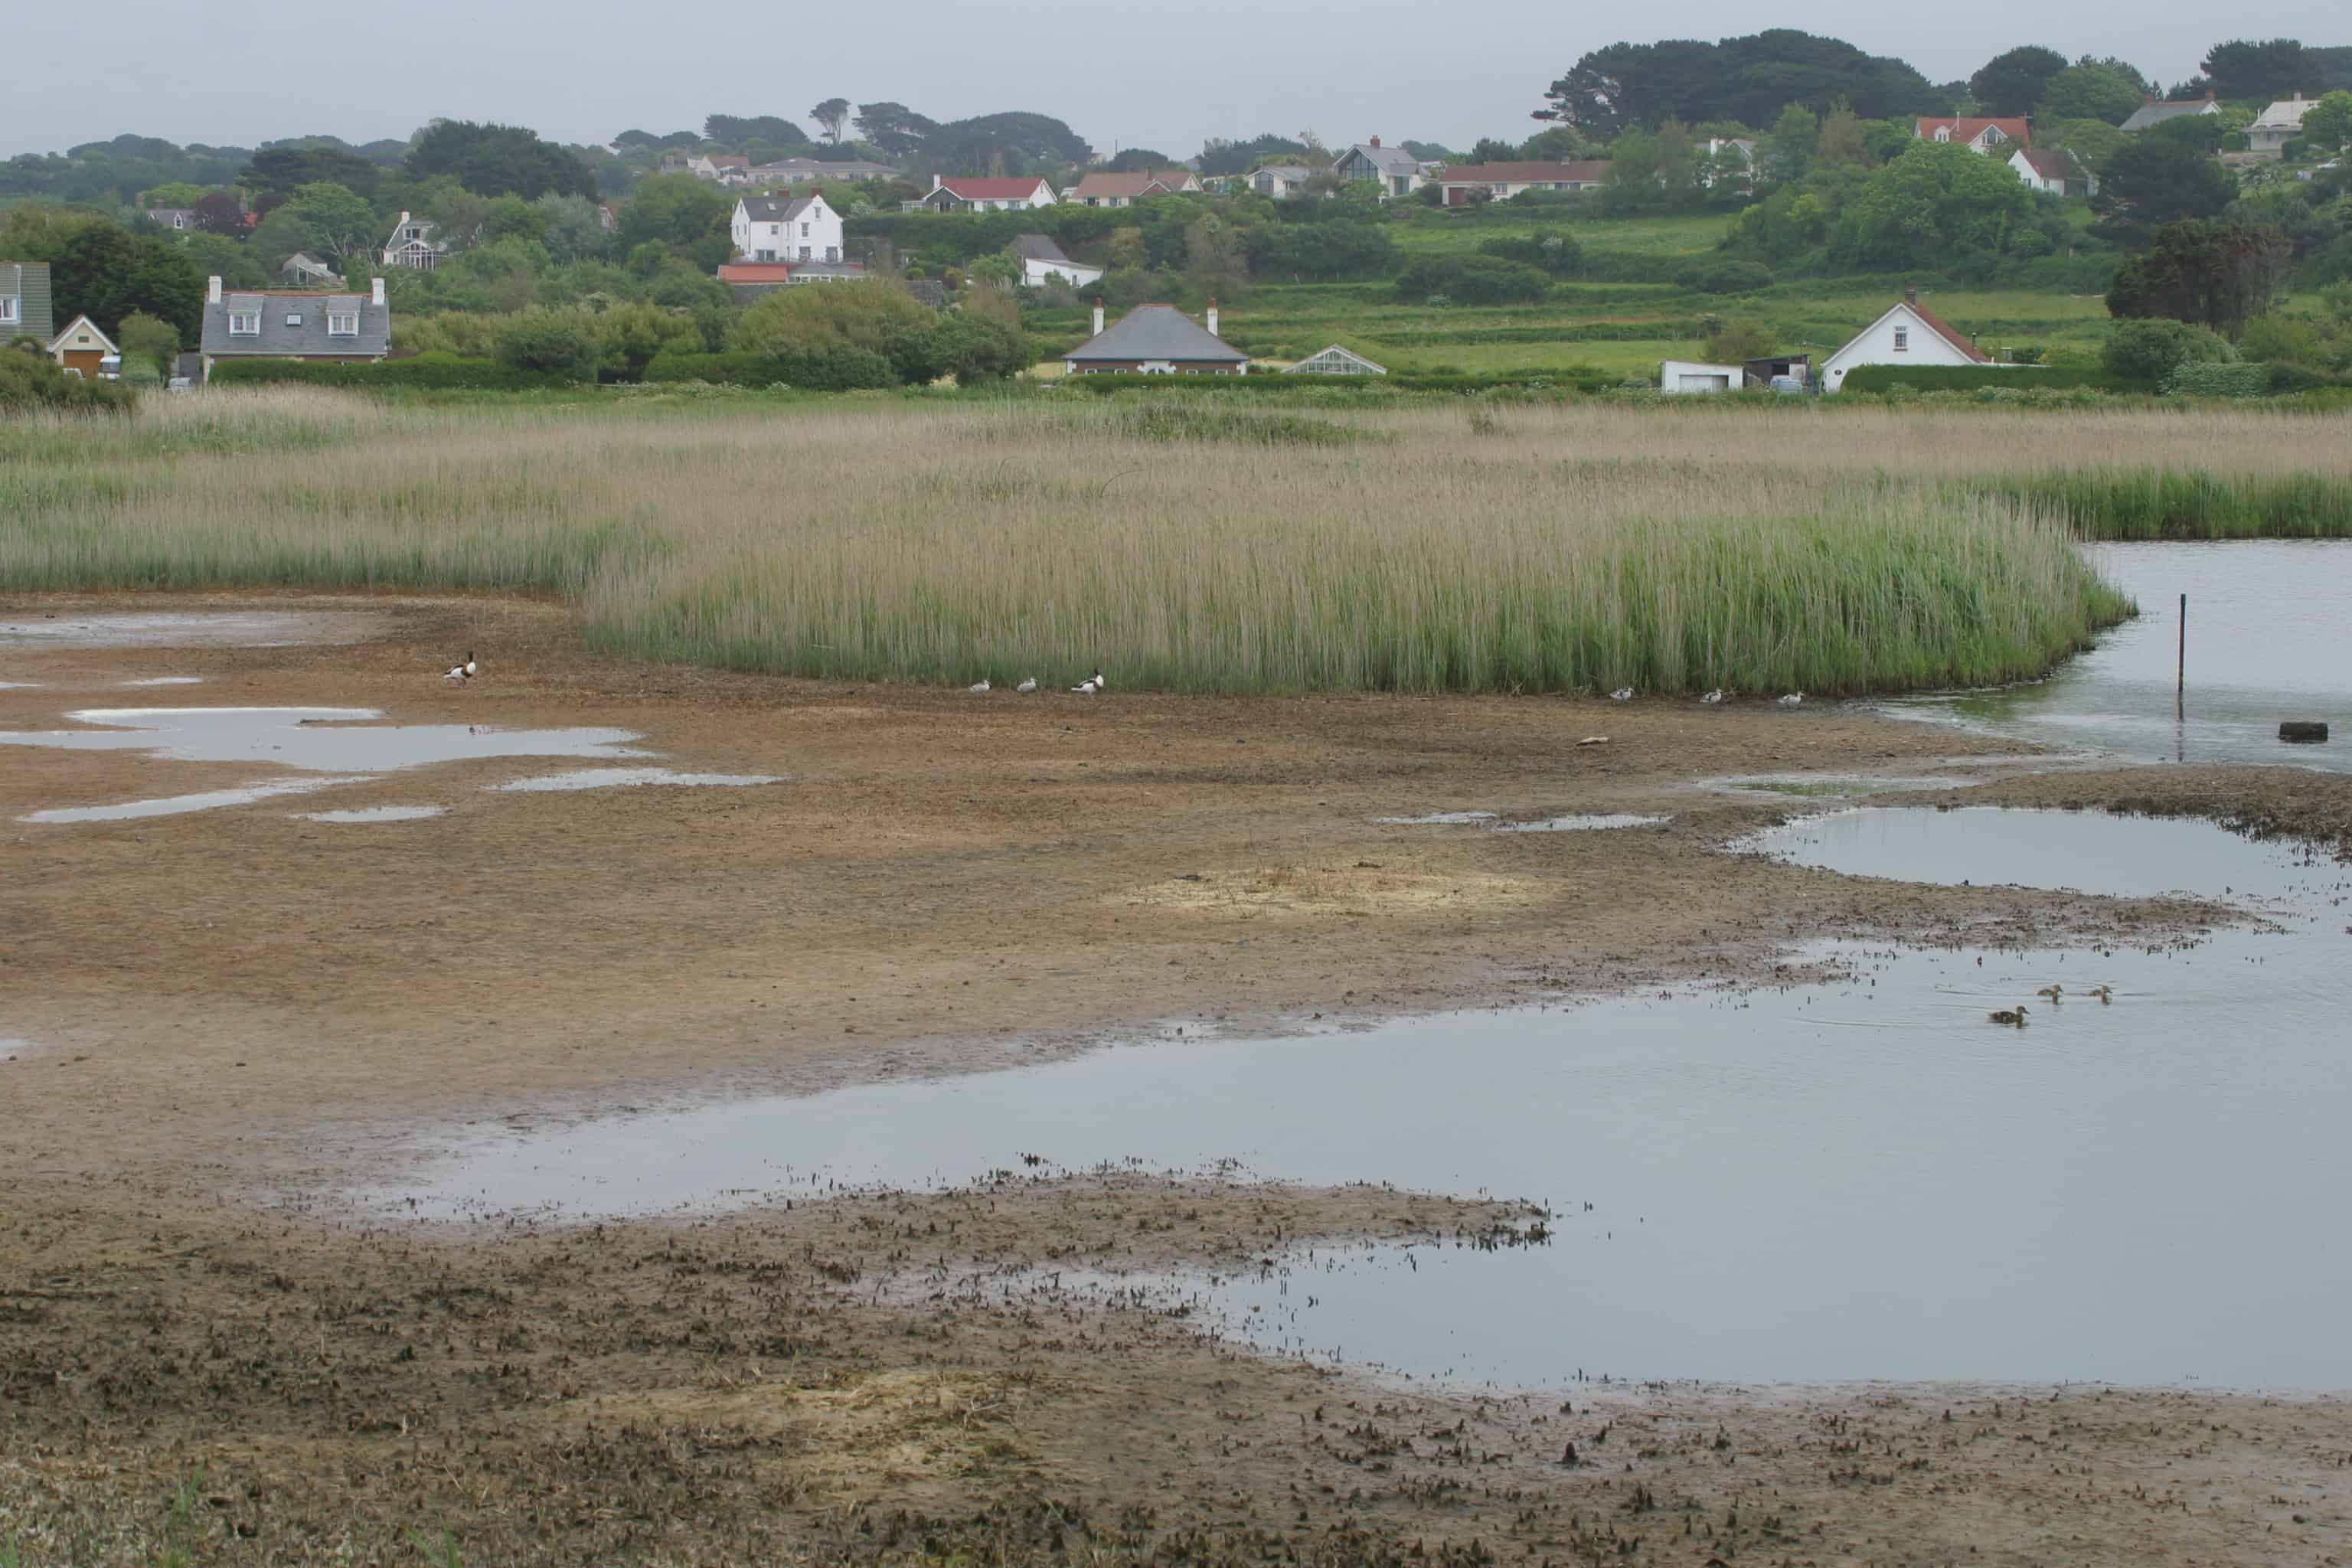 Guernsey has a varied landscape of town, villages, rolling farmland, ponds and marshes; Copyright: Dr Mike Pienkowski